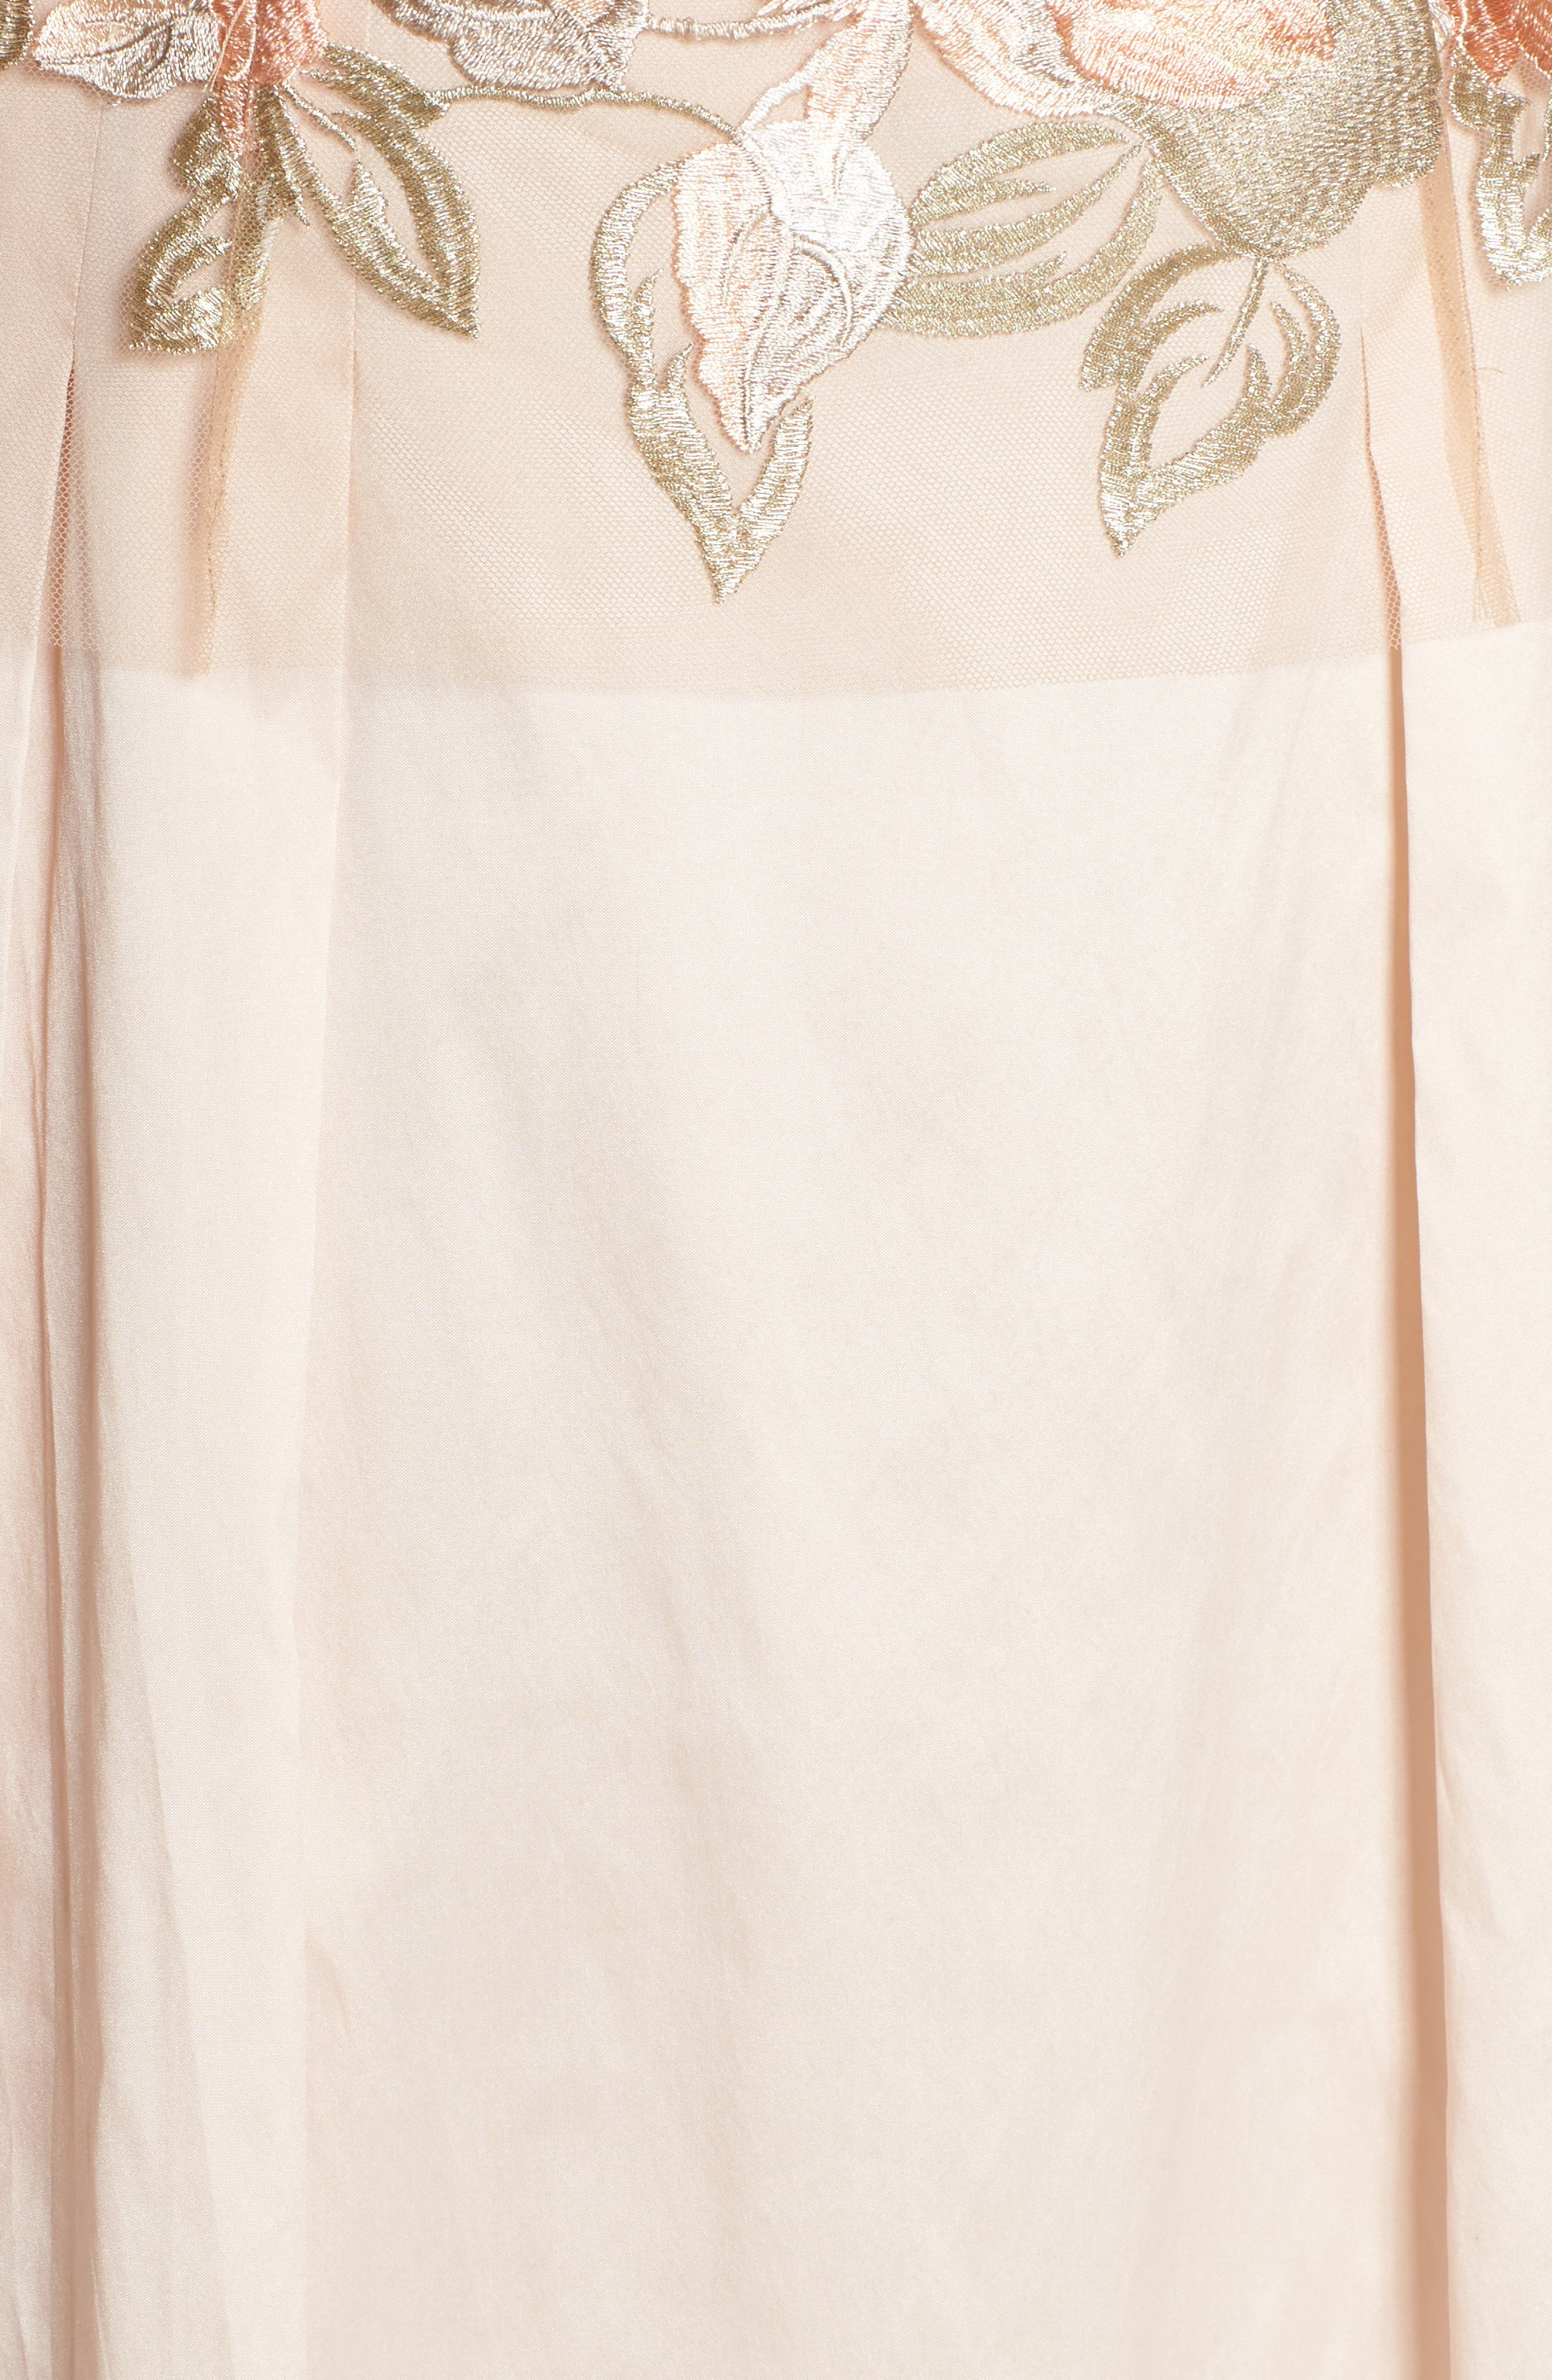 Floral Embroidered Gown,                             Alternate thumbnail 5, color,                             Pale Peach Multi